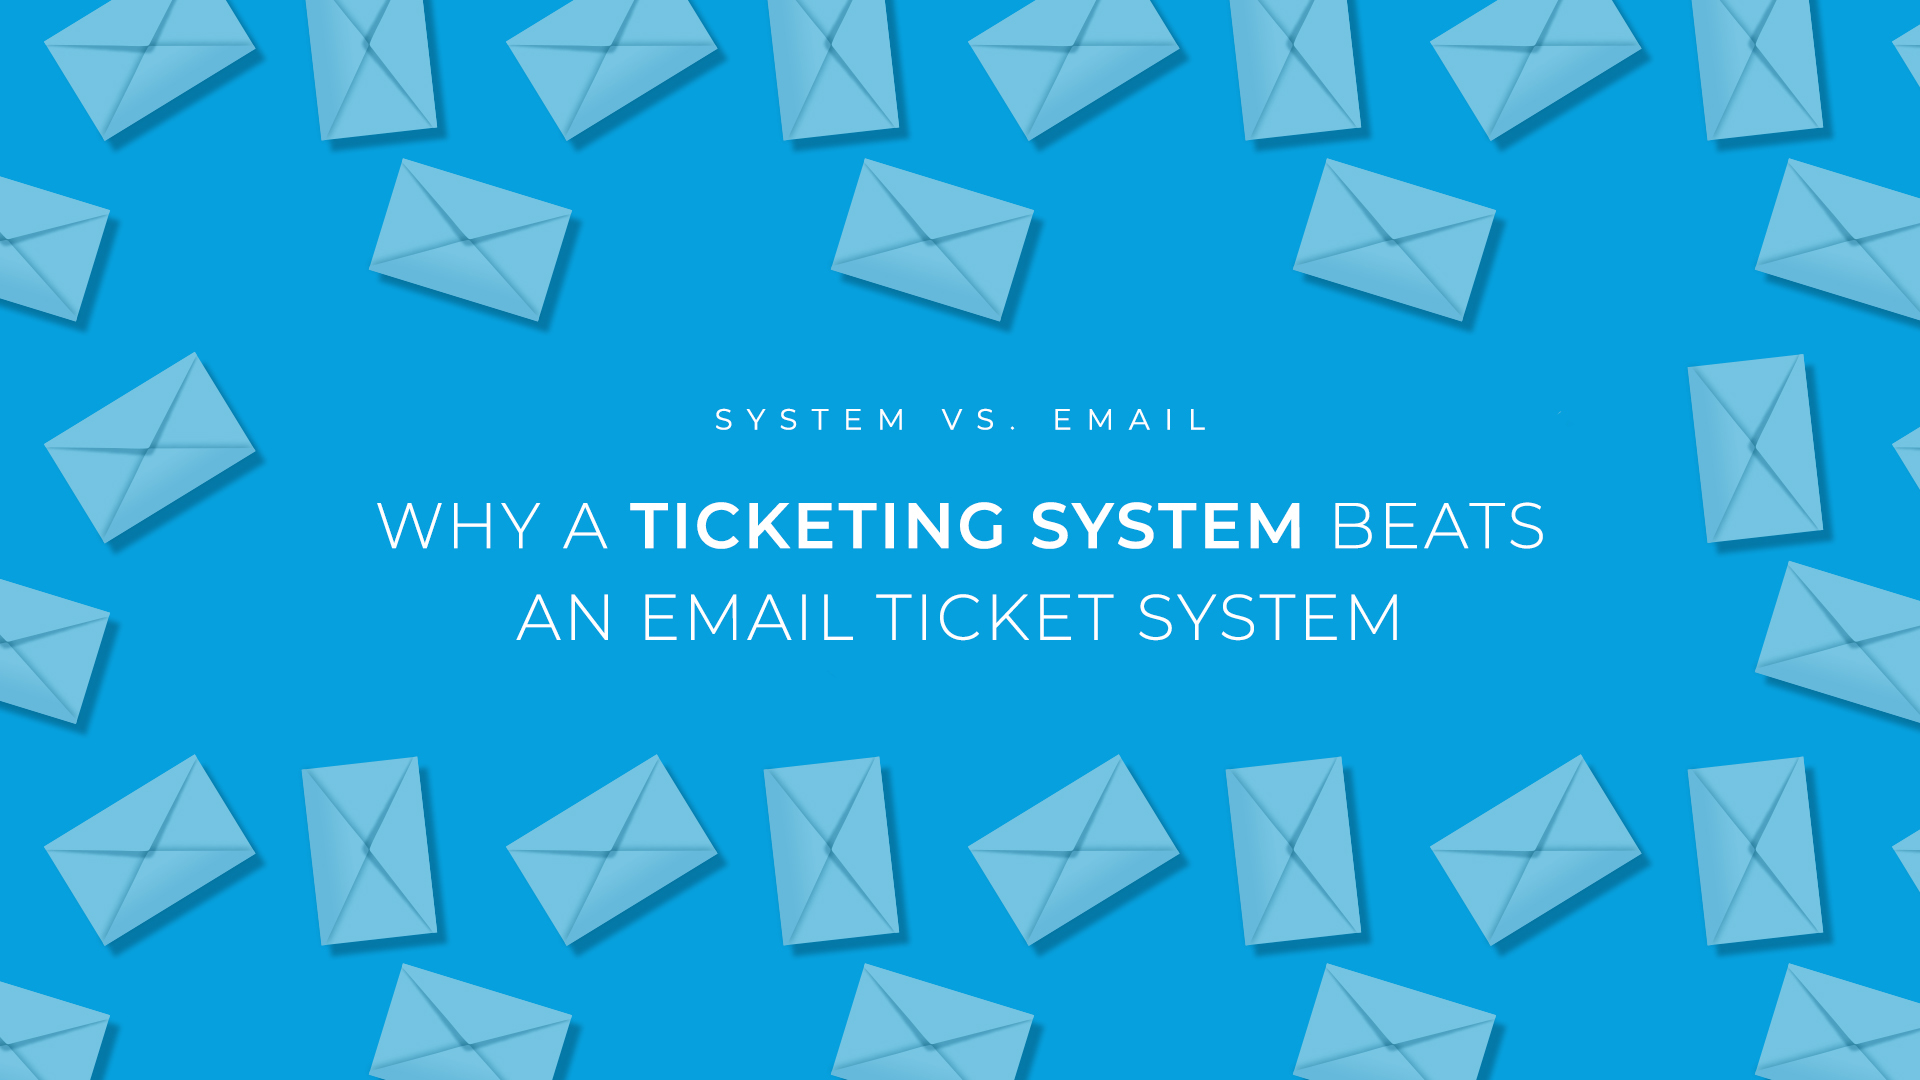 Why A Ticketing System Beats An Email Ticket System